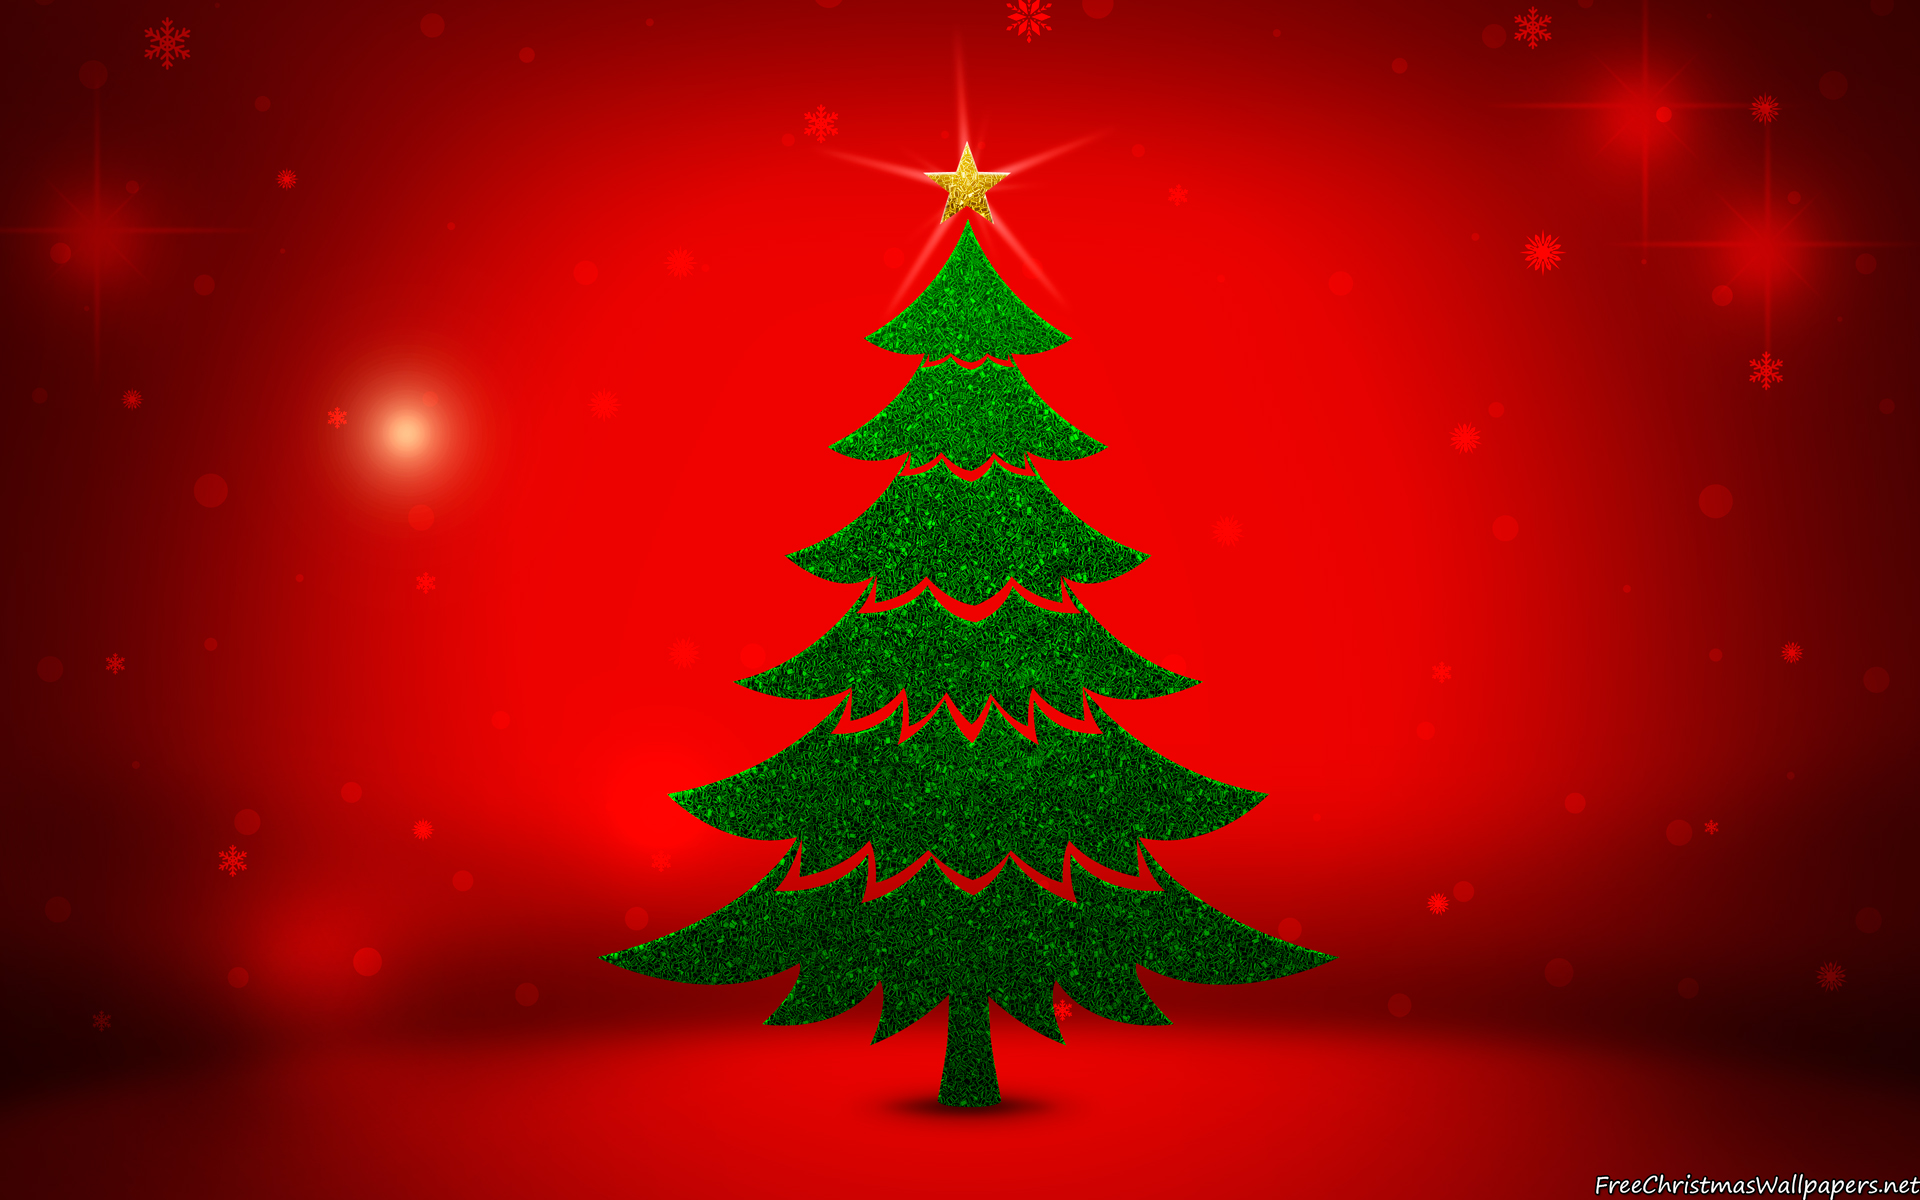 Cute Animated Wallpapers For Cell Phones Christmas Tree Backgrounds Hd Wallpapers Pulse